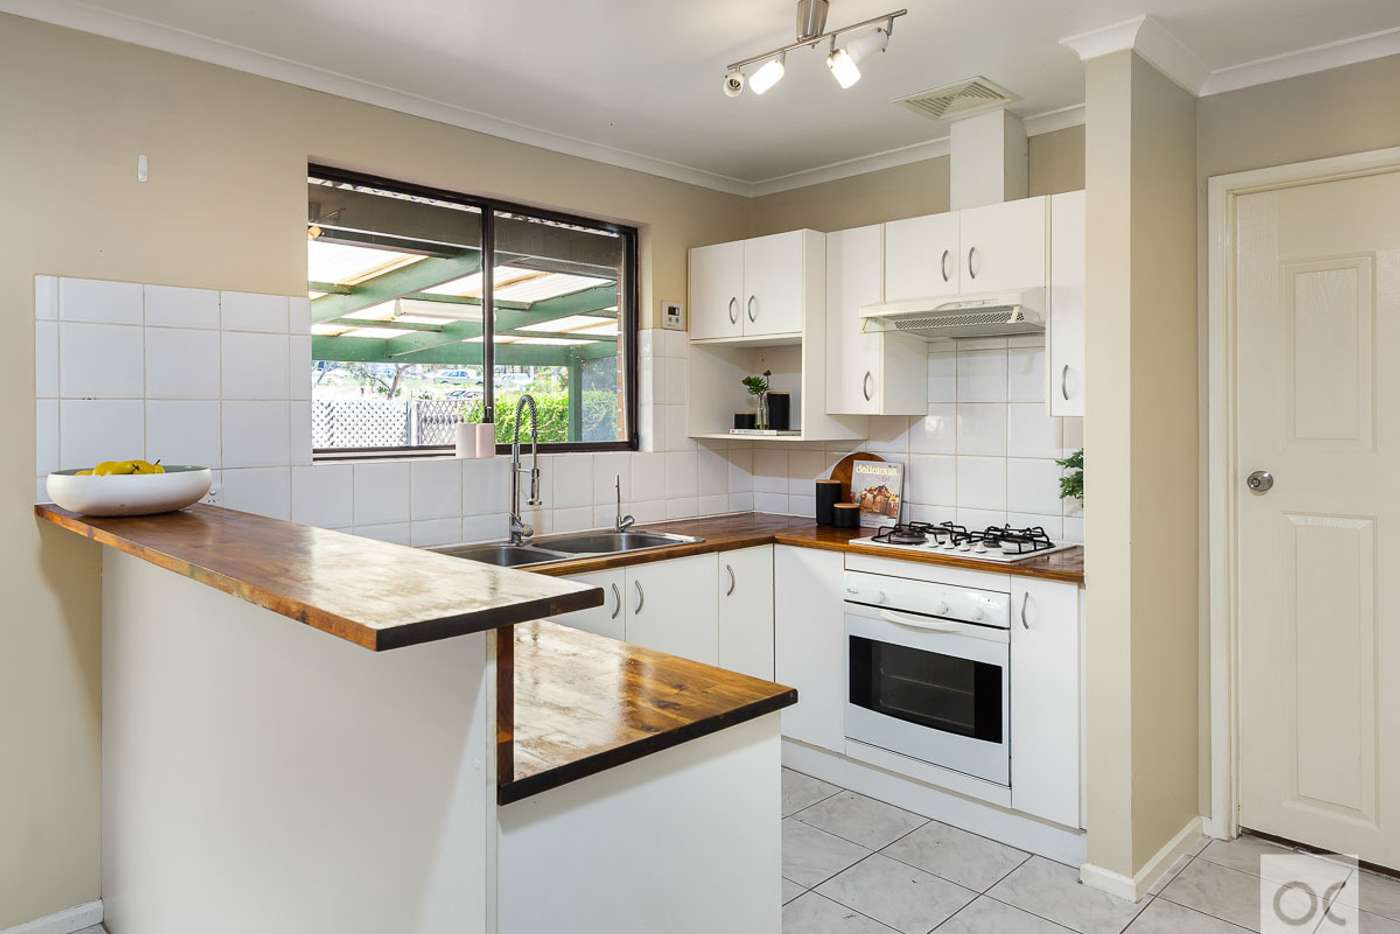 Fifth view of Homely house listing, 1 Ridgefield Avenue, Seaview Downs SA 5049